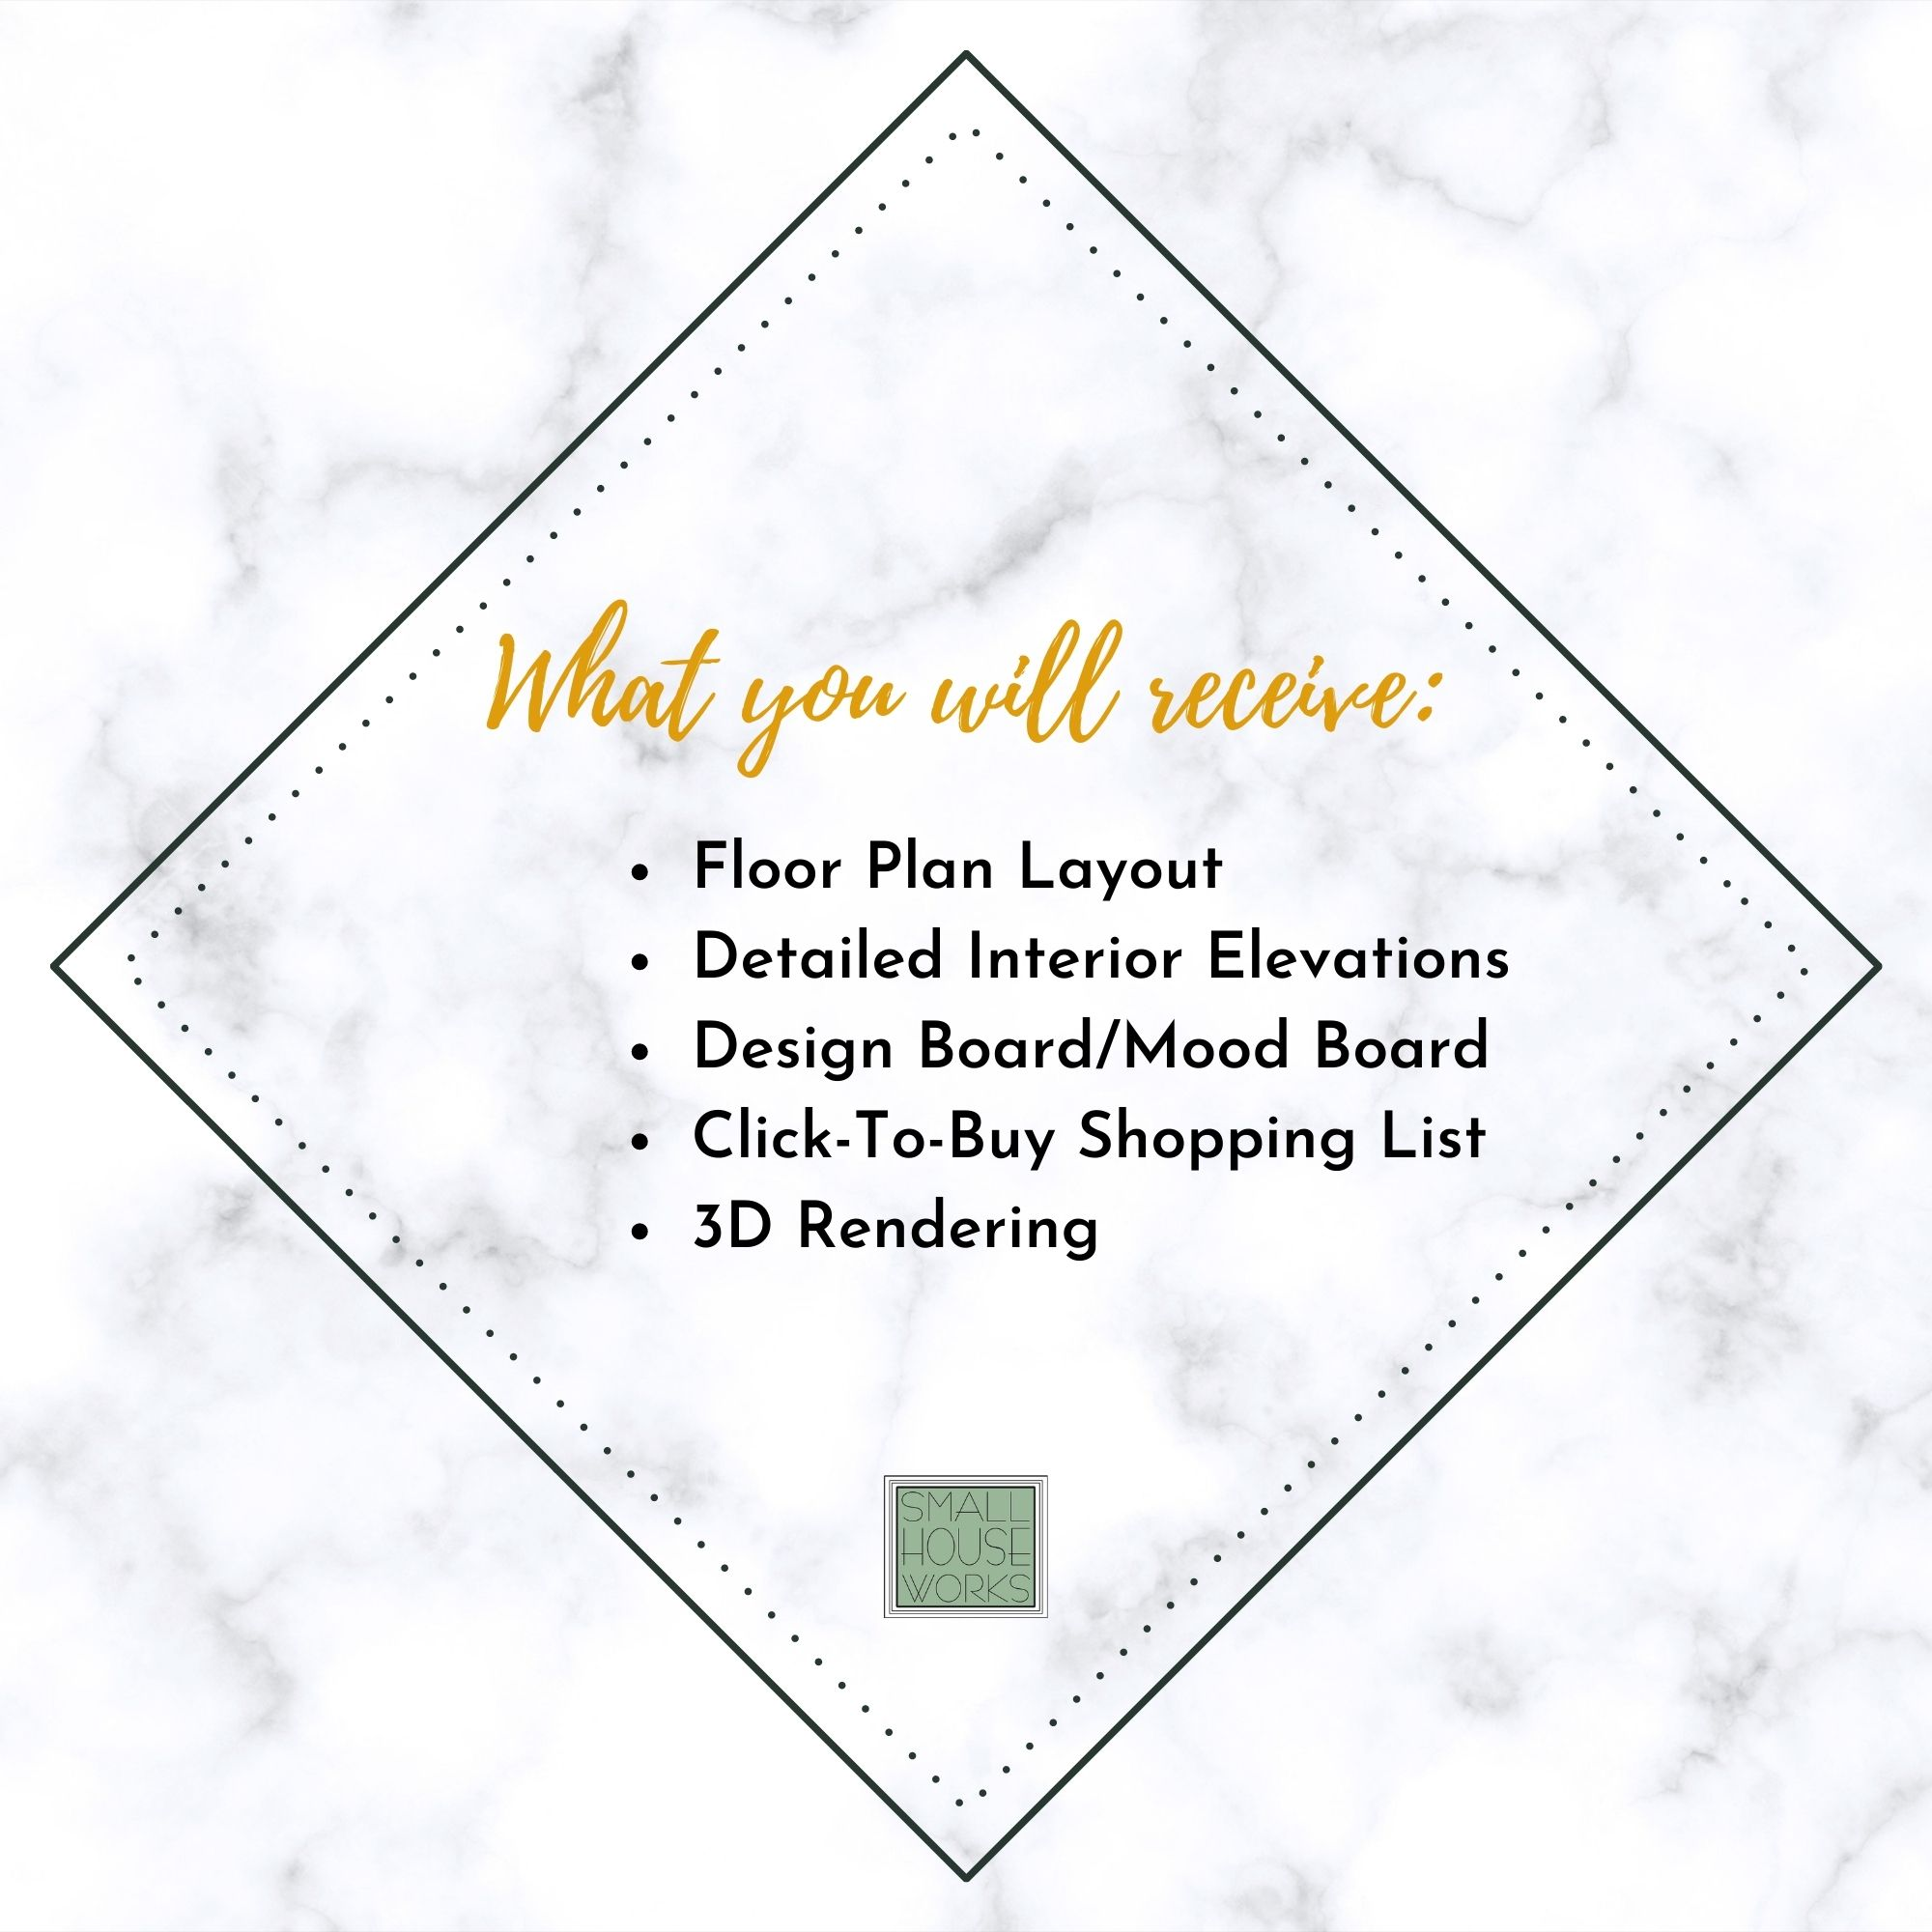 WHAT YOU WILL RECEIVE- ALL E DESIGN SERVICES